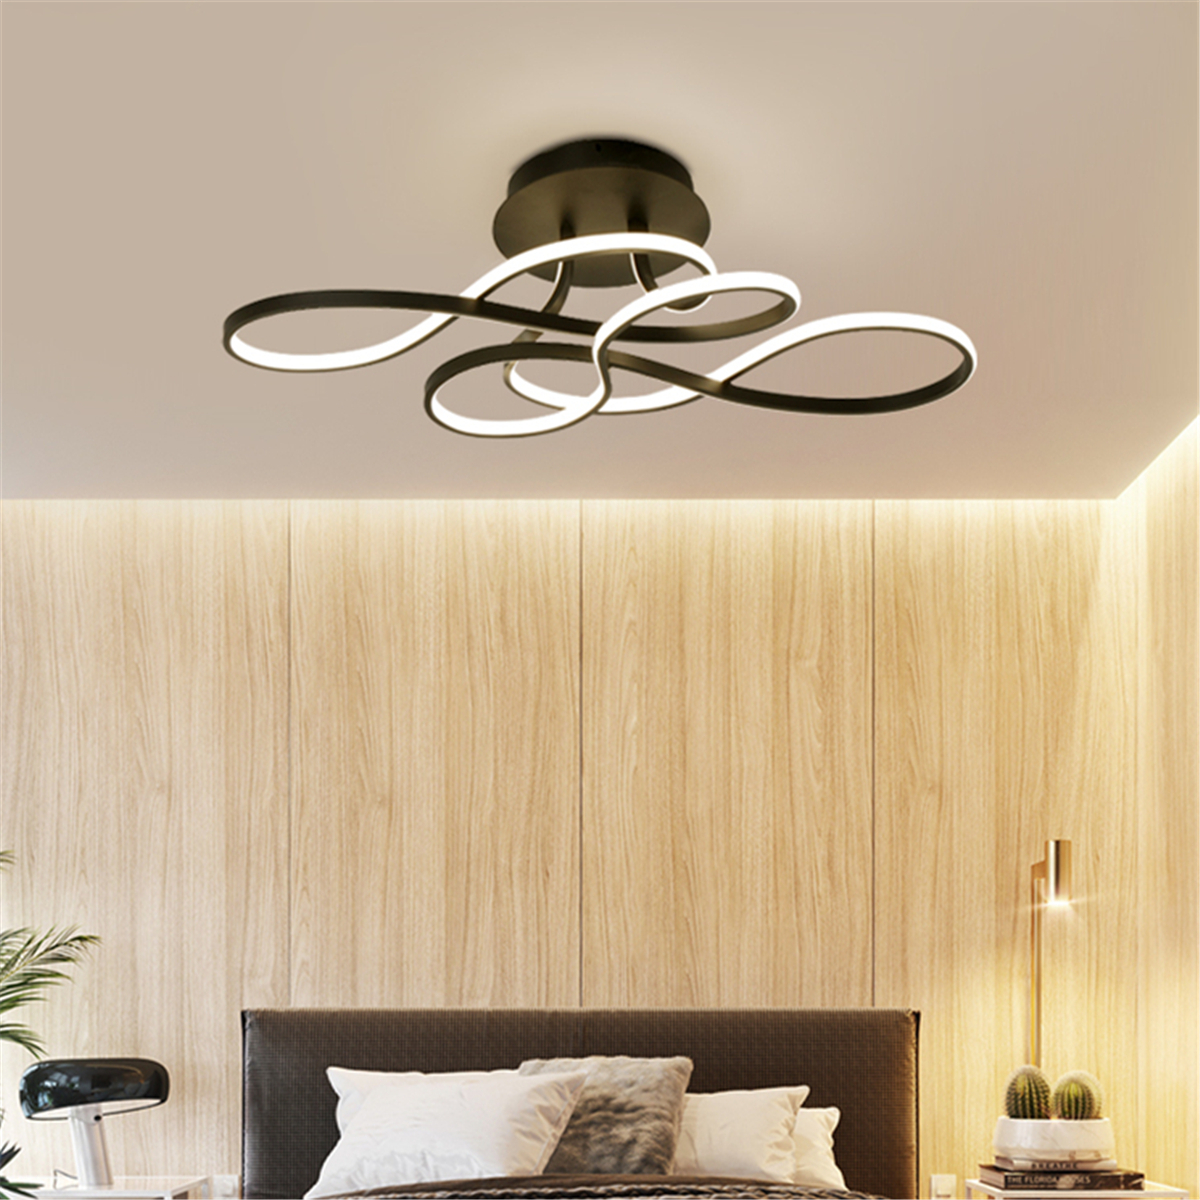 110v Led Modern Acrylic Chandelier Living Room Ceiling Light Pendant Lamp Fixtur with Modern Bedroom Ceiling Light